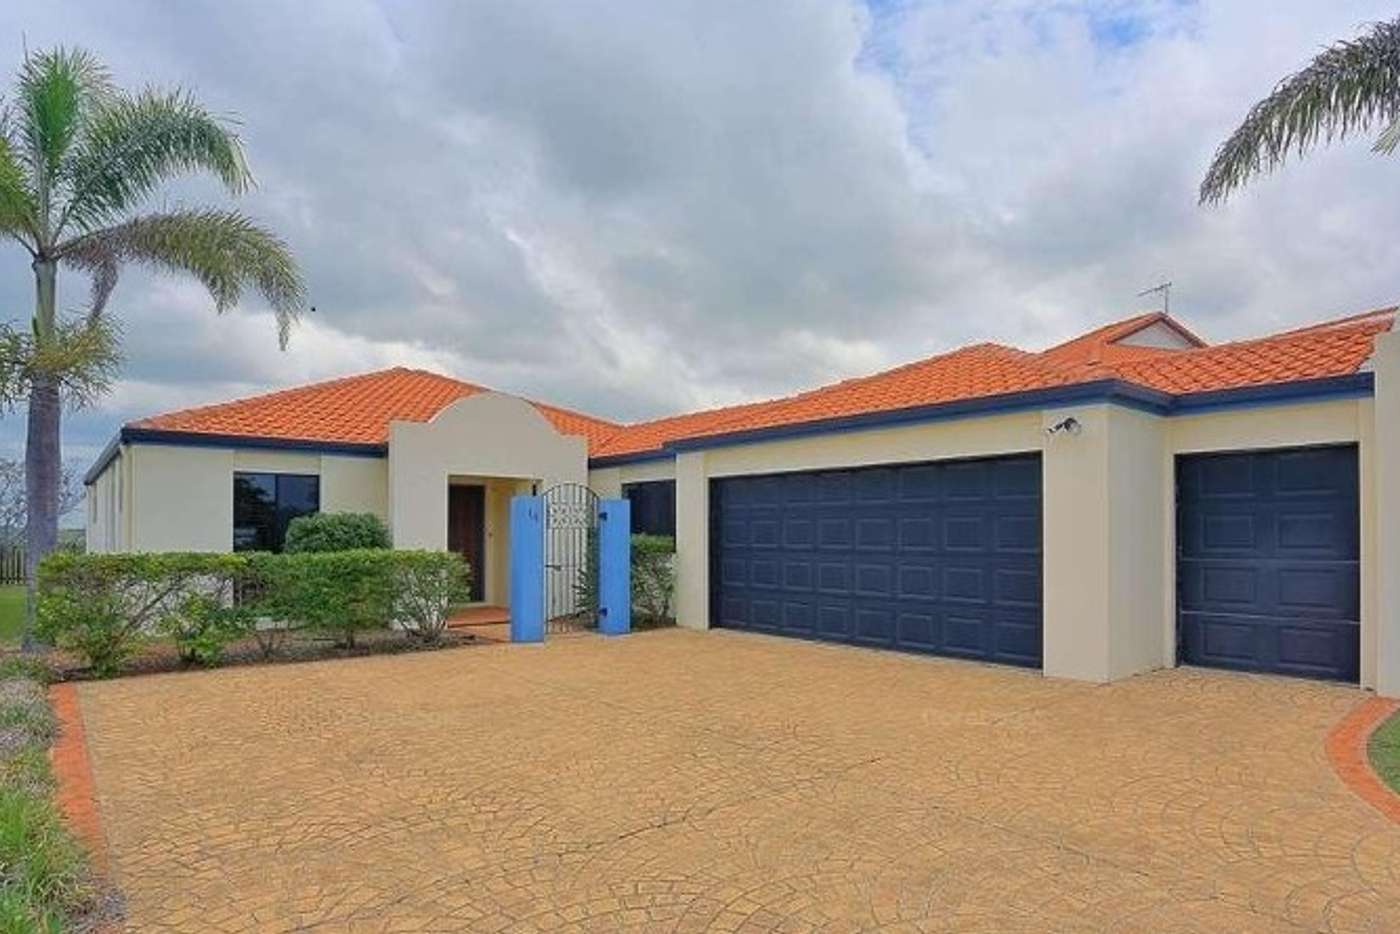 Main view of Homely house listing, 14 Chantelle Cct, Coral Cove QLD 4670